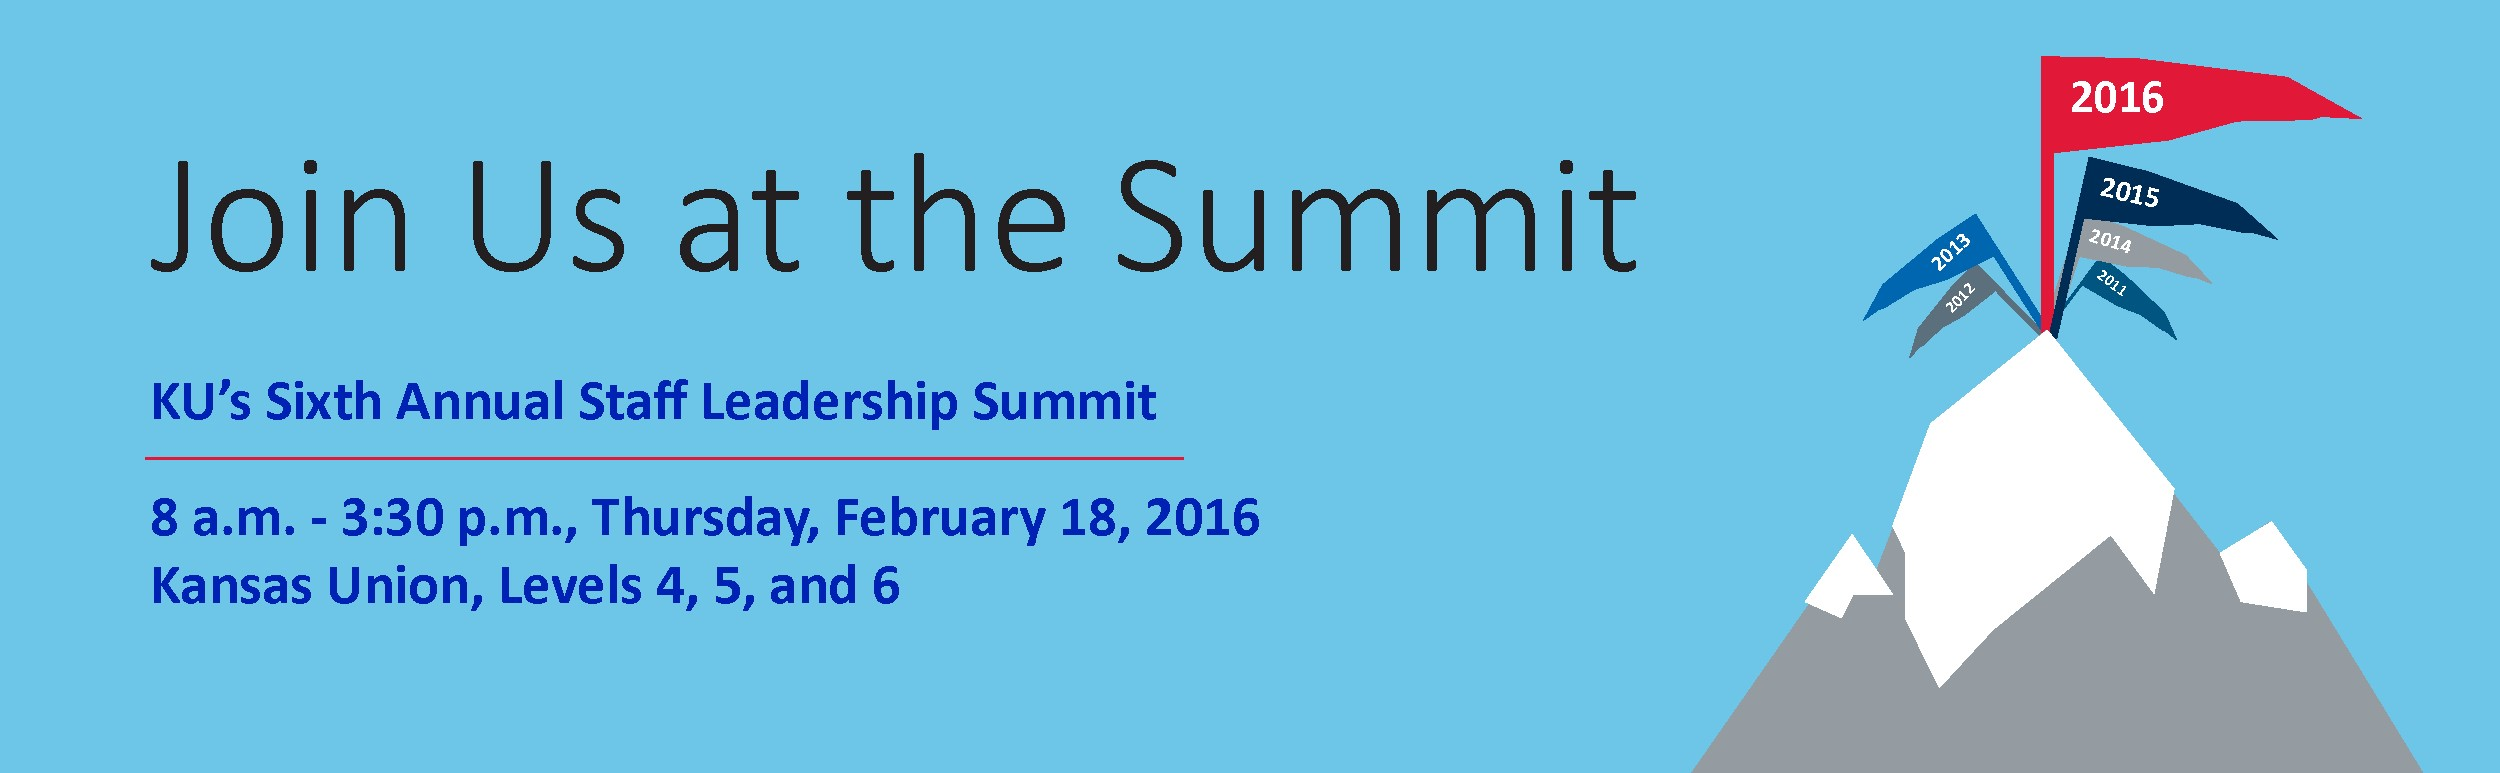 Join us at the Summitt February 18, 2015